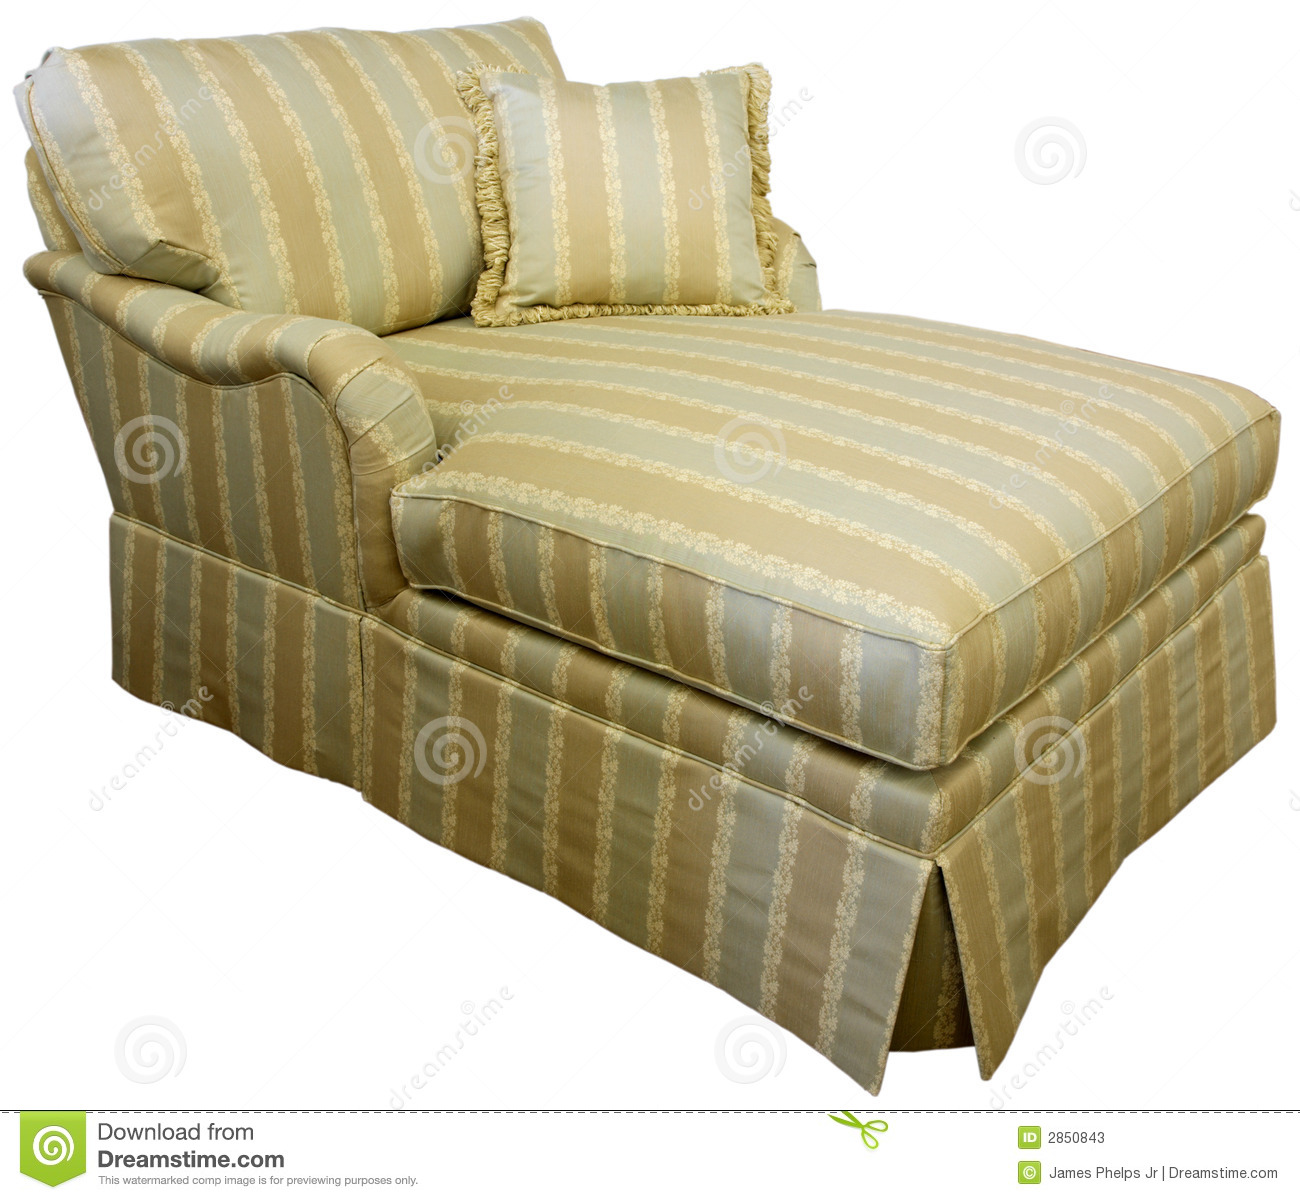 Chaise Lounge Sofa Stock Photos - Image: 2850843